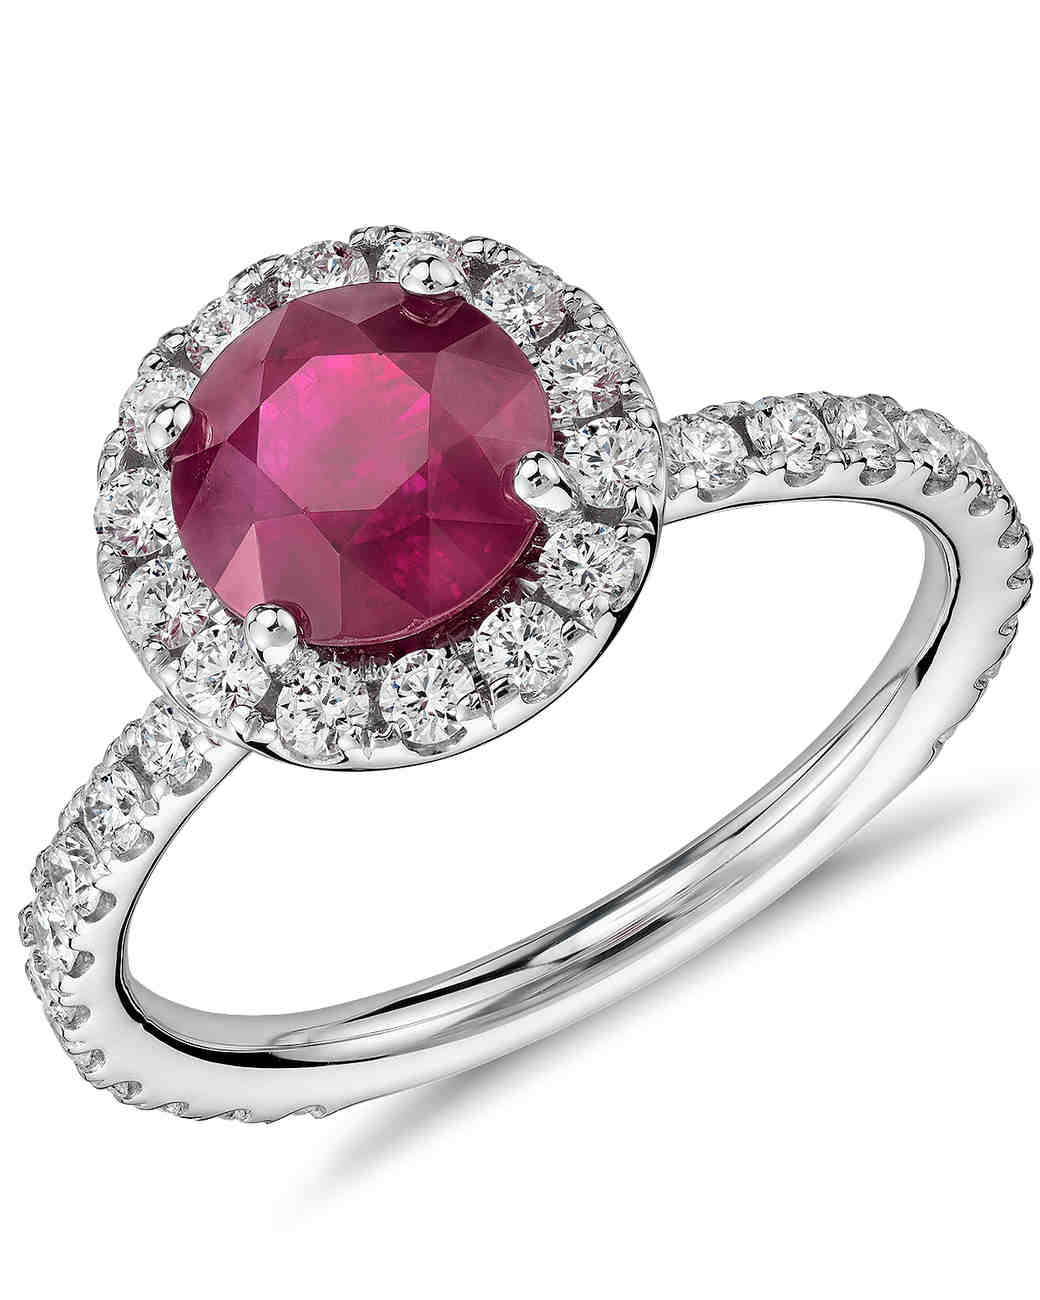 Blue Nile Ruby Engagement Ring with Diamond Pavé Halo